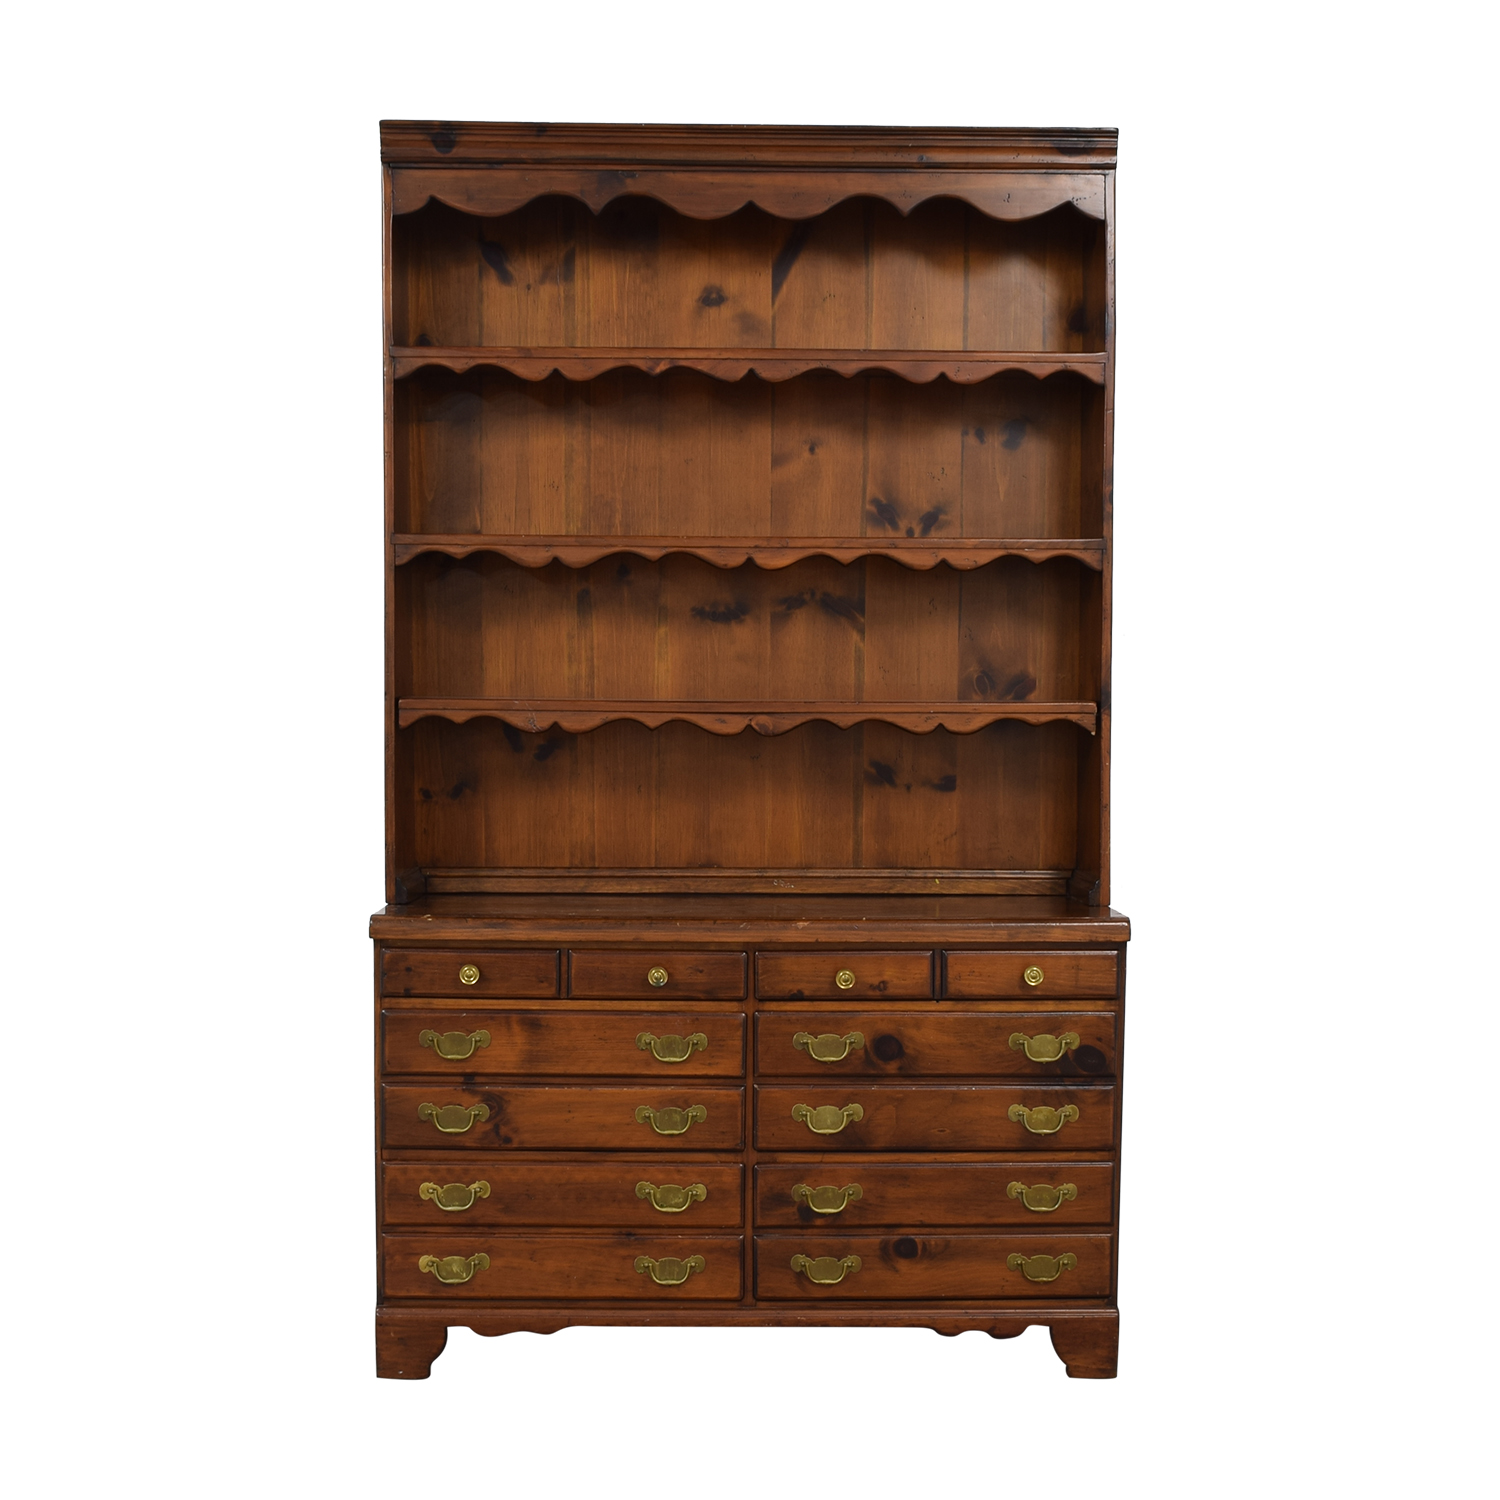 Wood Twelve-Drawer Dovetailed Sideboard with Hutch nj